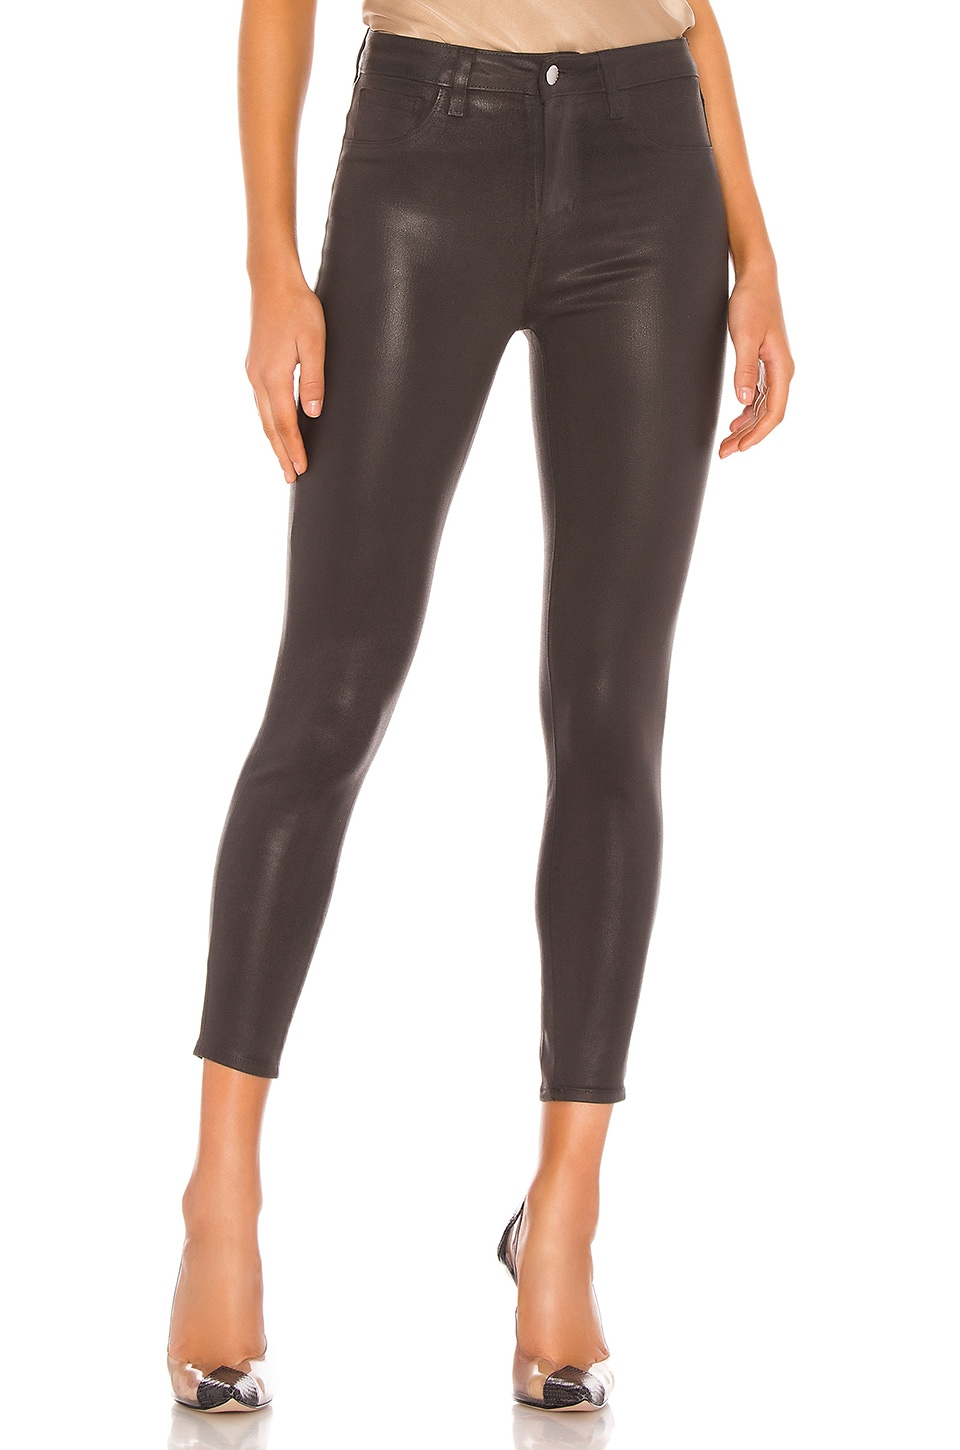 L'AGENCE Coated Margot High Rise Skinny in Greystone Coated